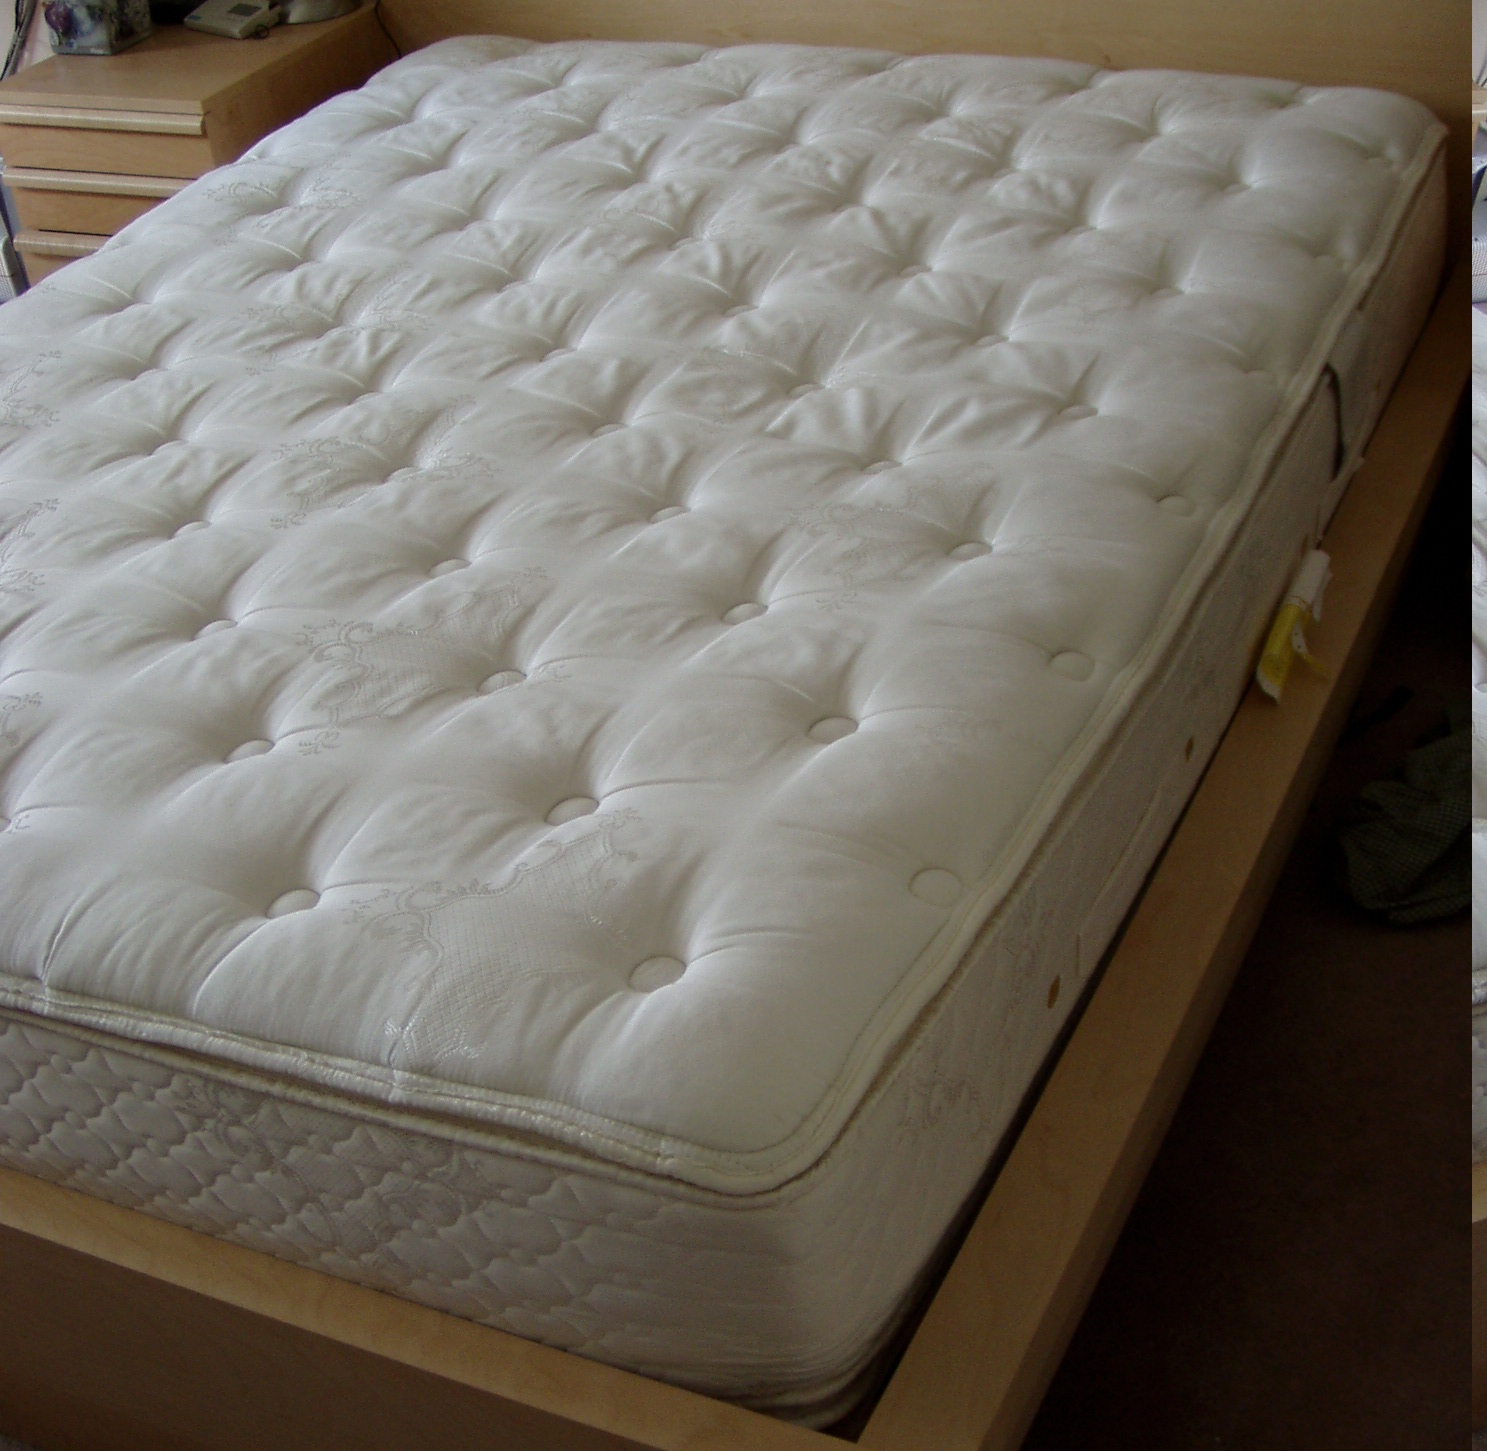 Datei Pillowtop Mattress Jpg Wikipedia